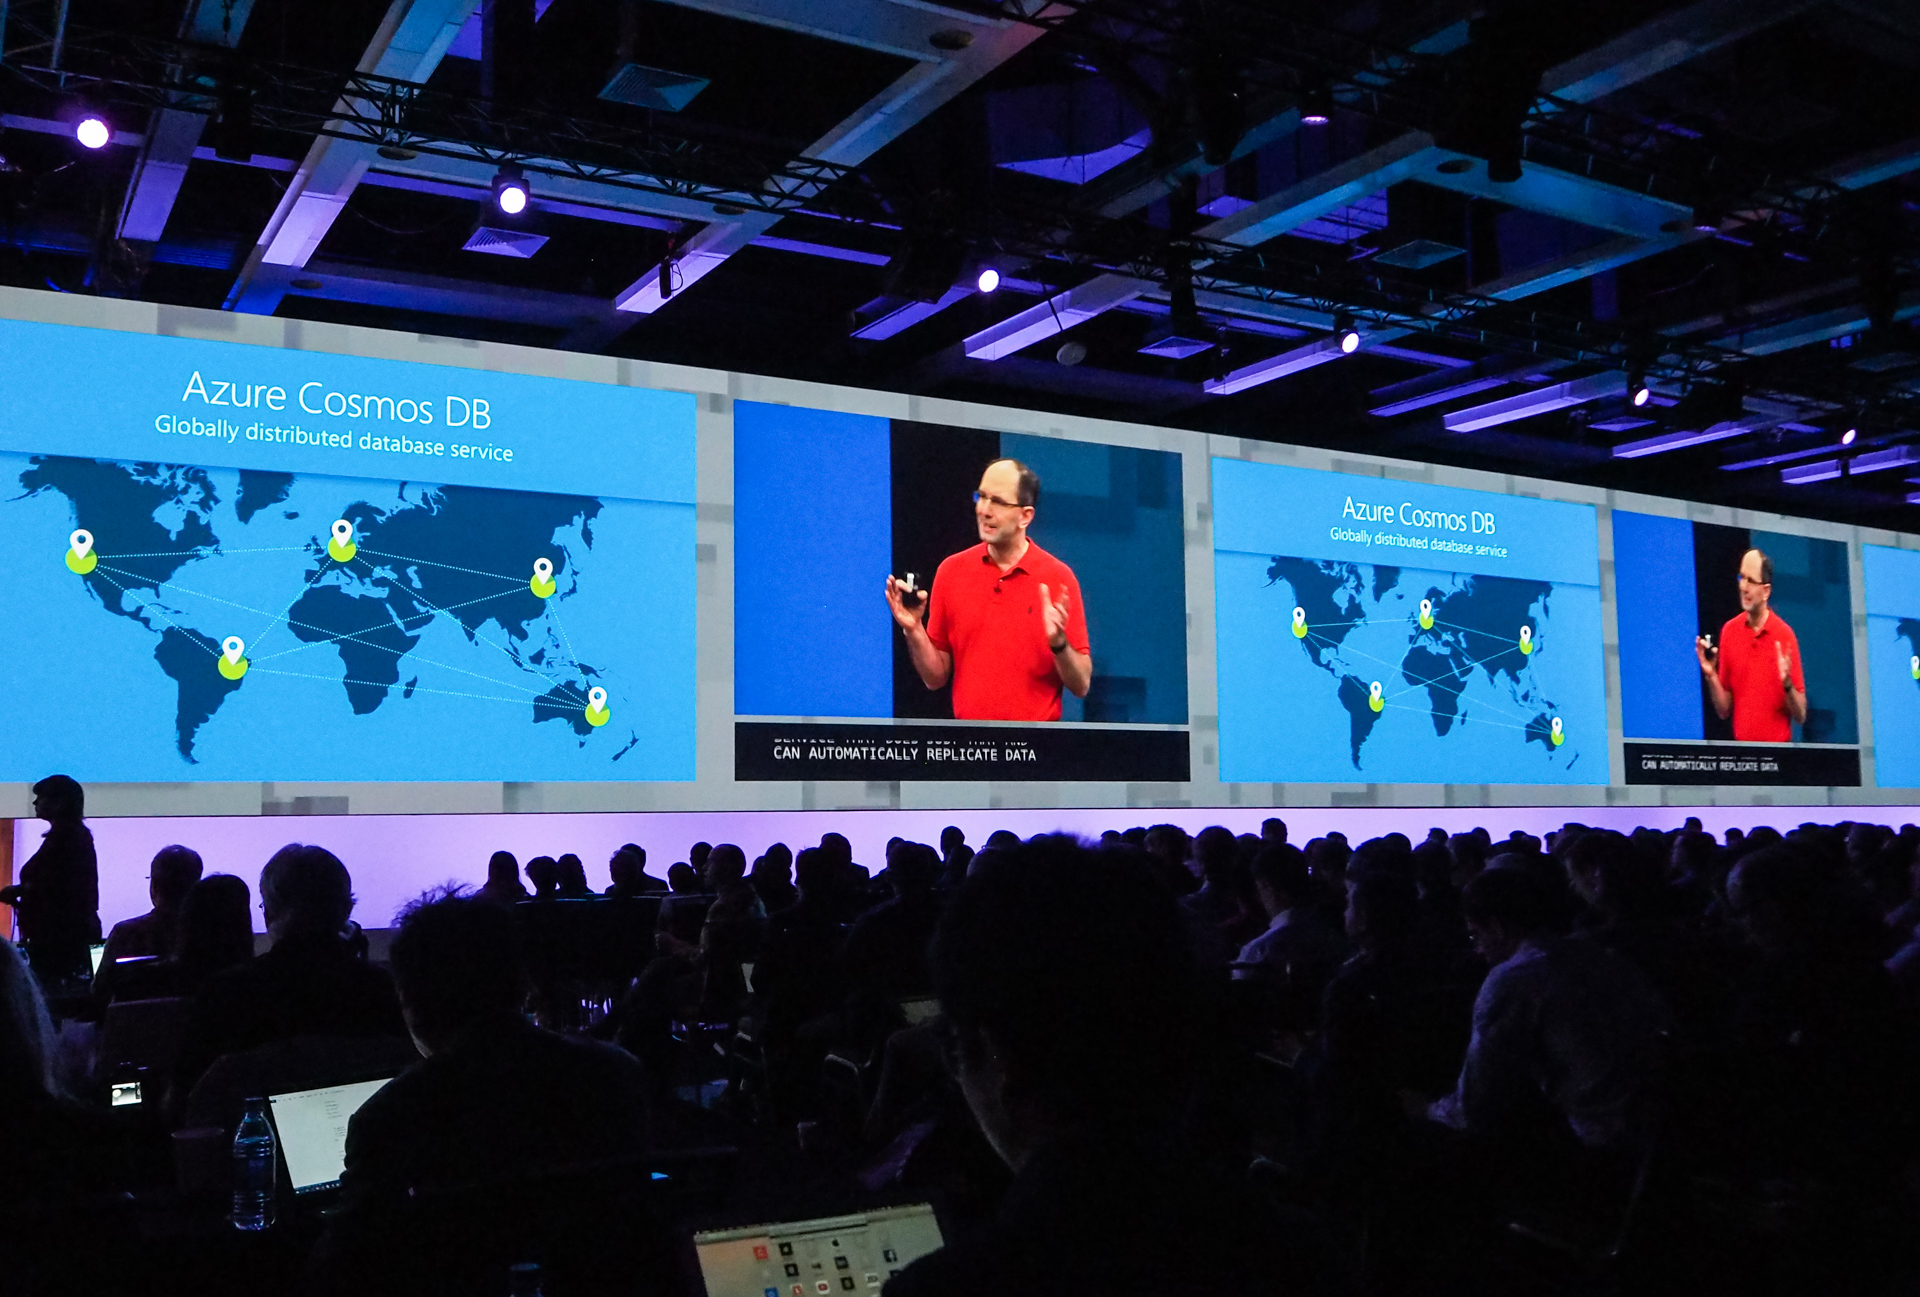 With Cosmos DB, Microsoft wants to build one database to